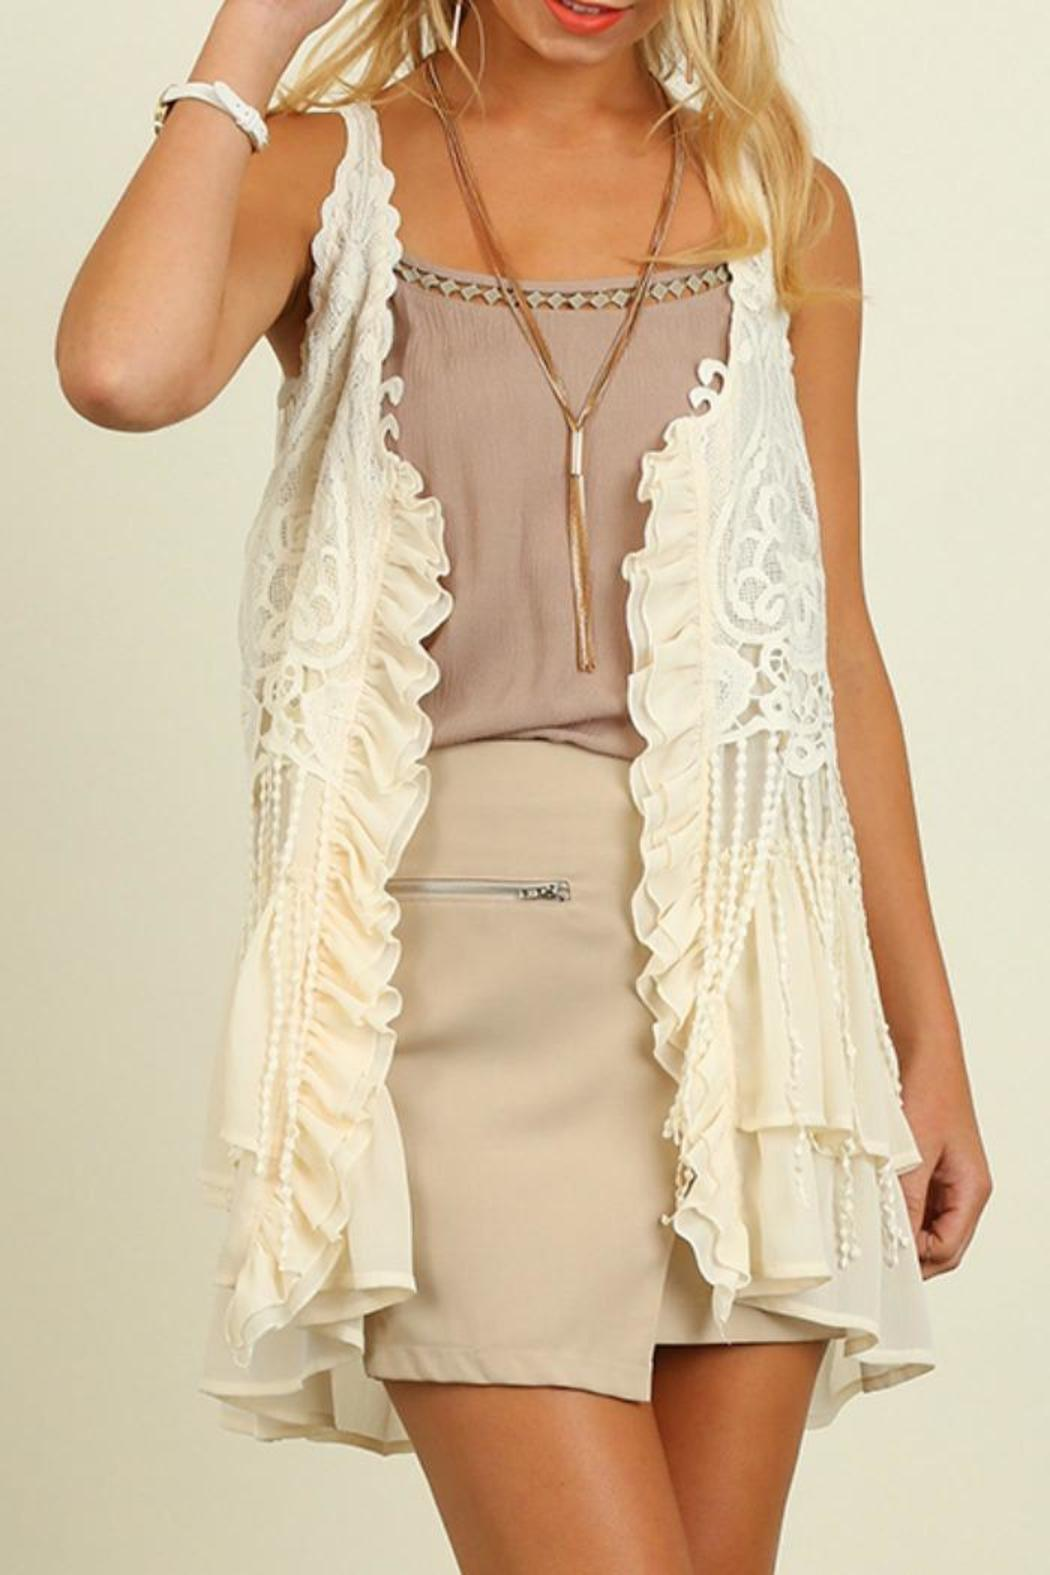 27b2949eb101c Umgee USA Ruffle   Lace Vest from Franklin by Adalees — Shoptiques